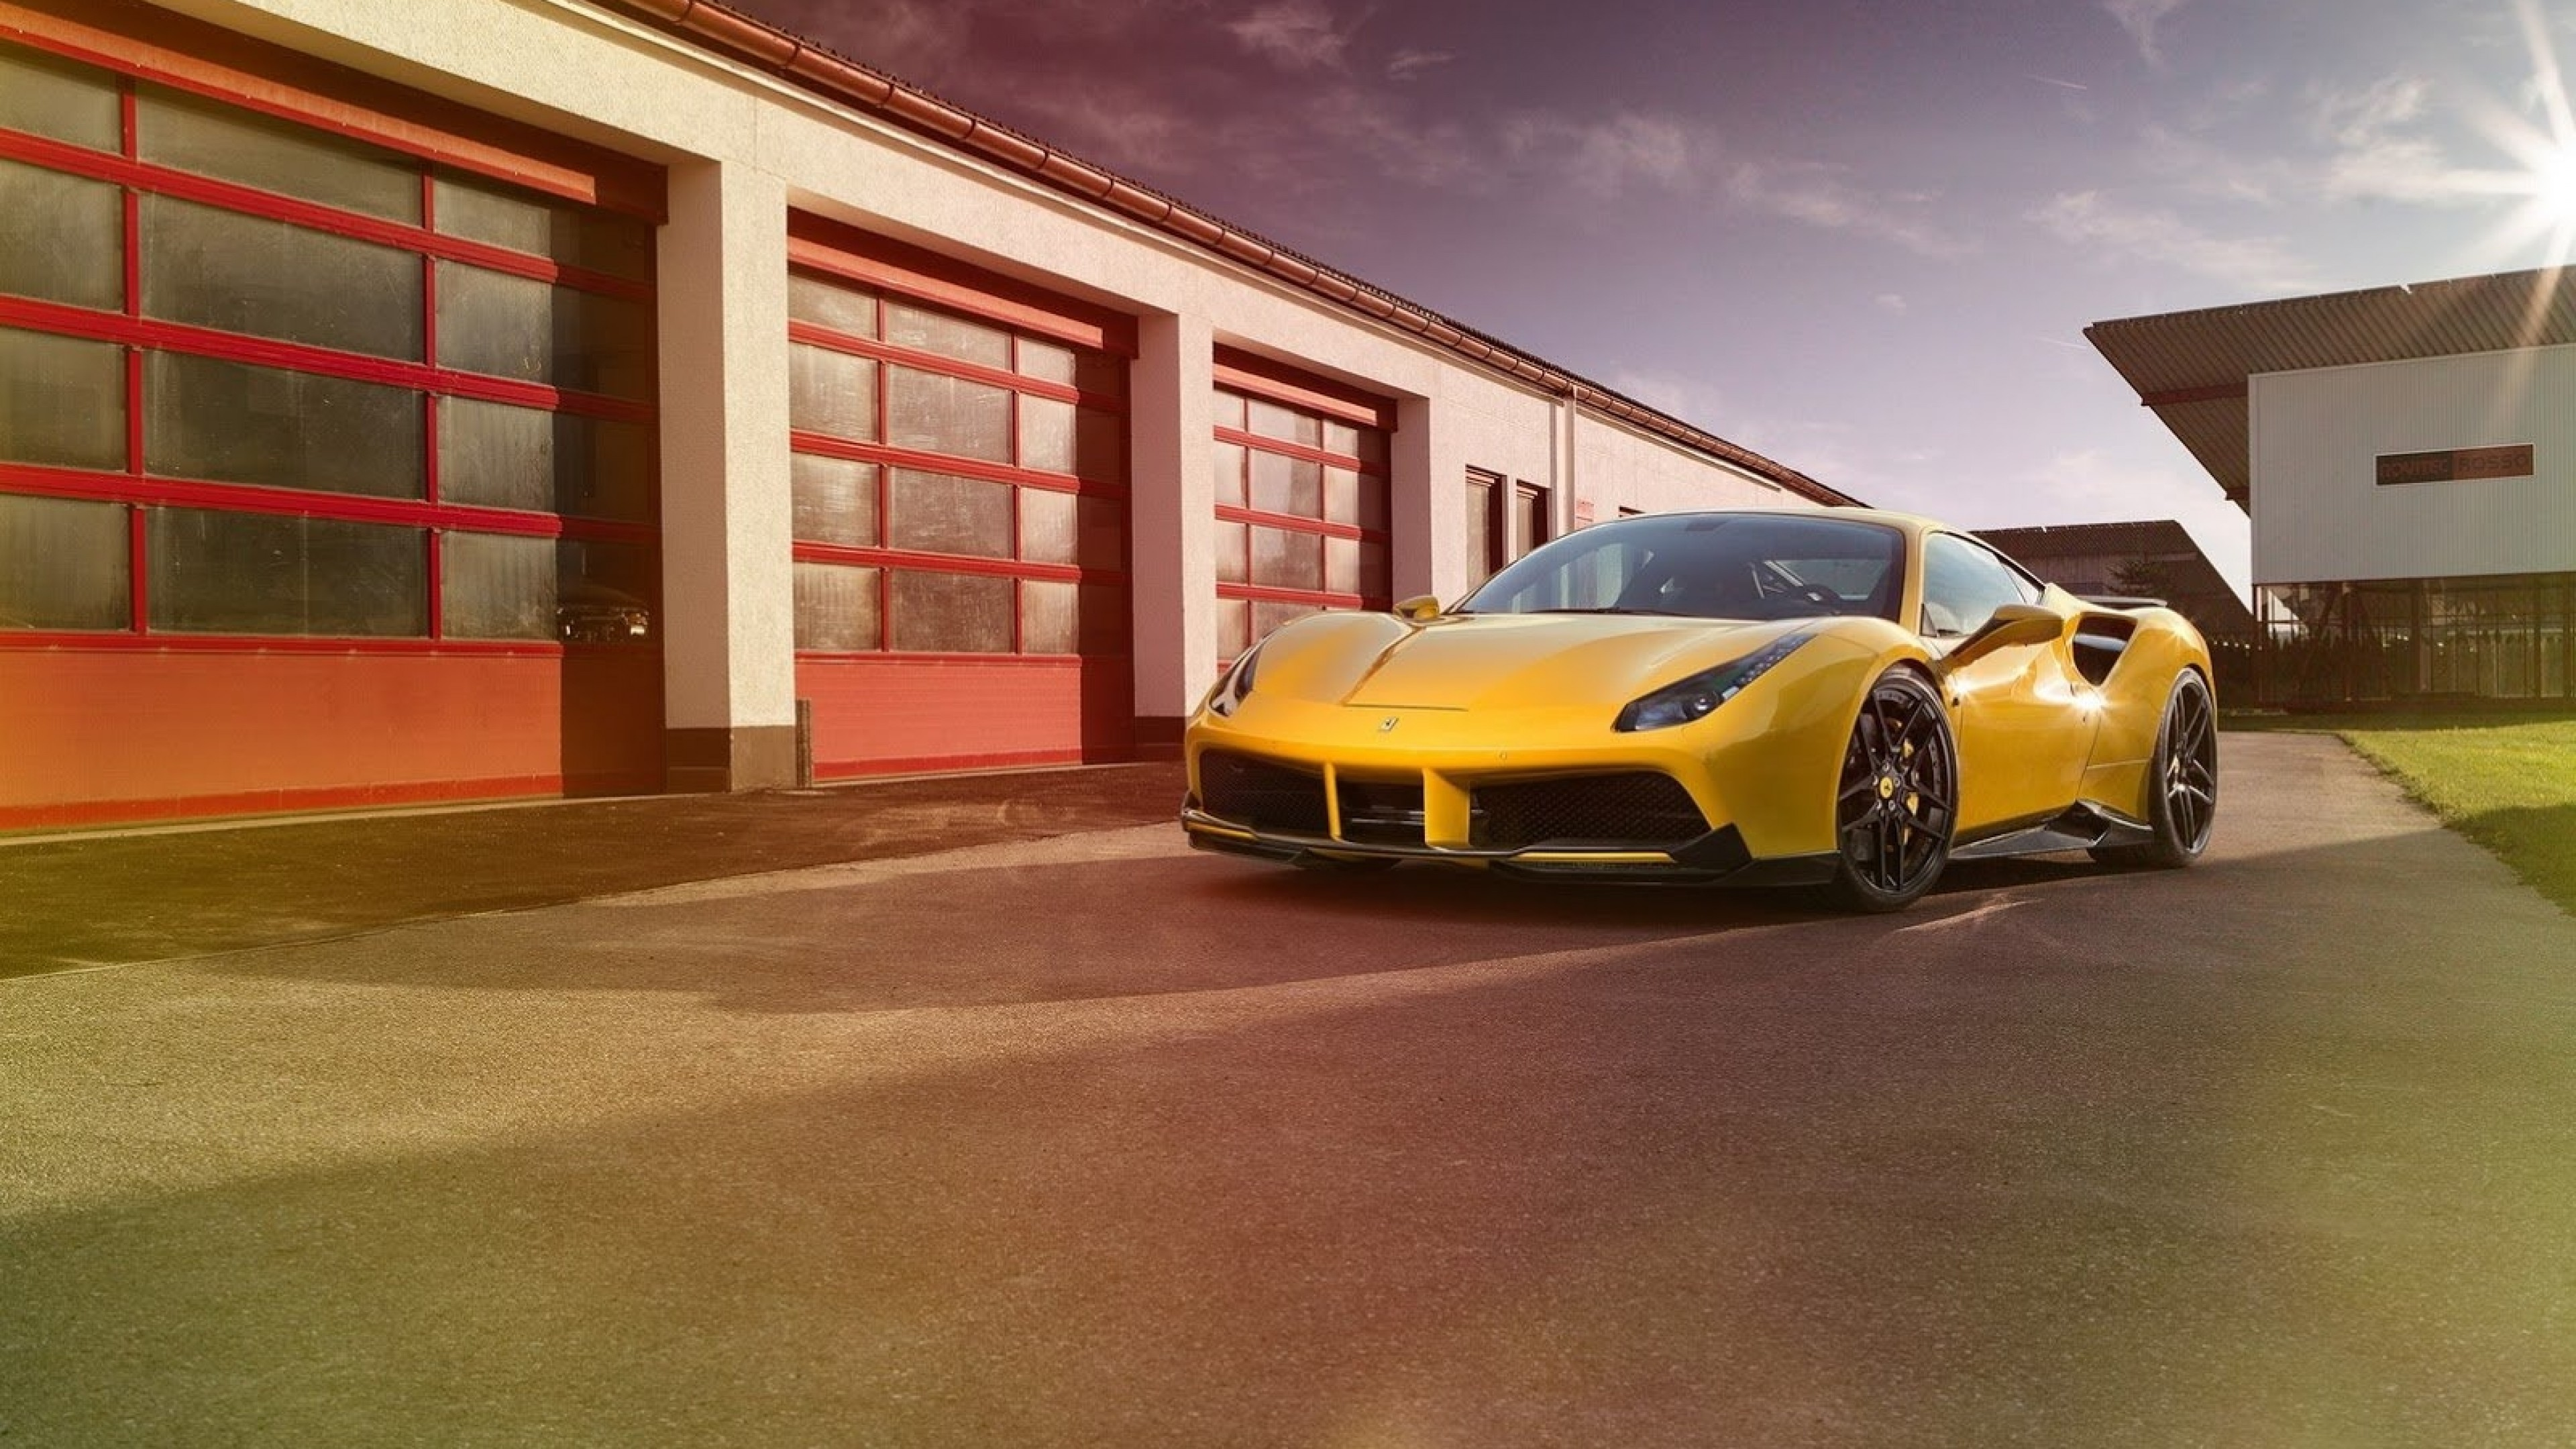 Download 3840x2160 Cars, Ferrari 488 Gtb, Yellow, Garage Wallpapers